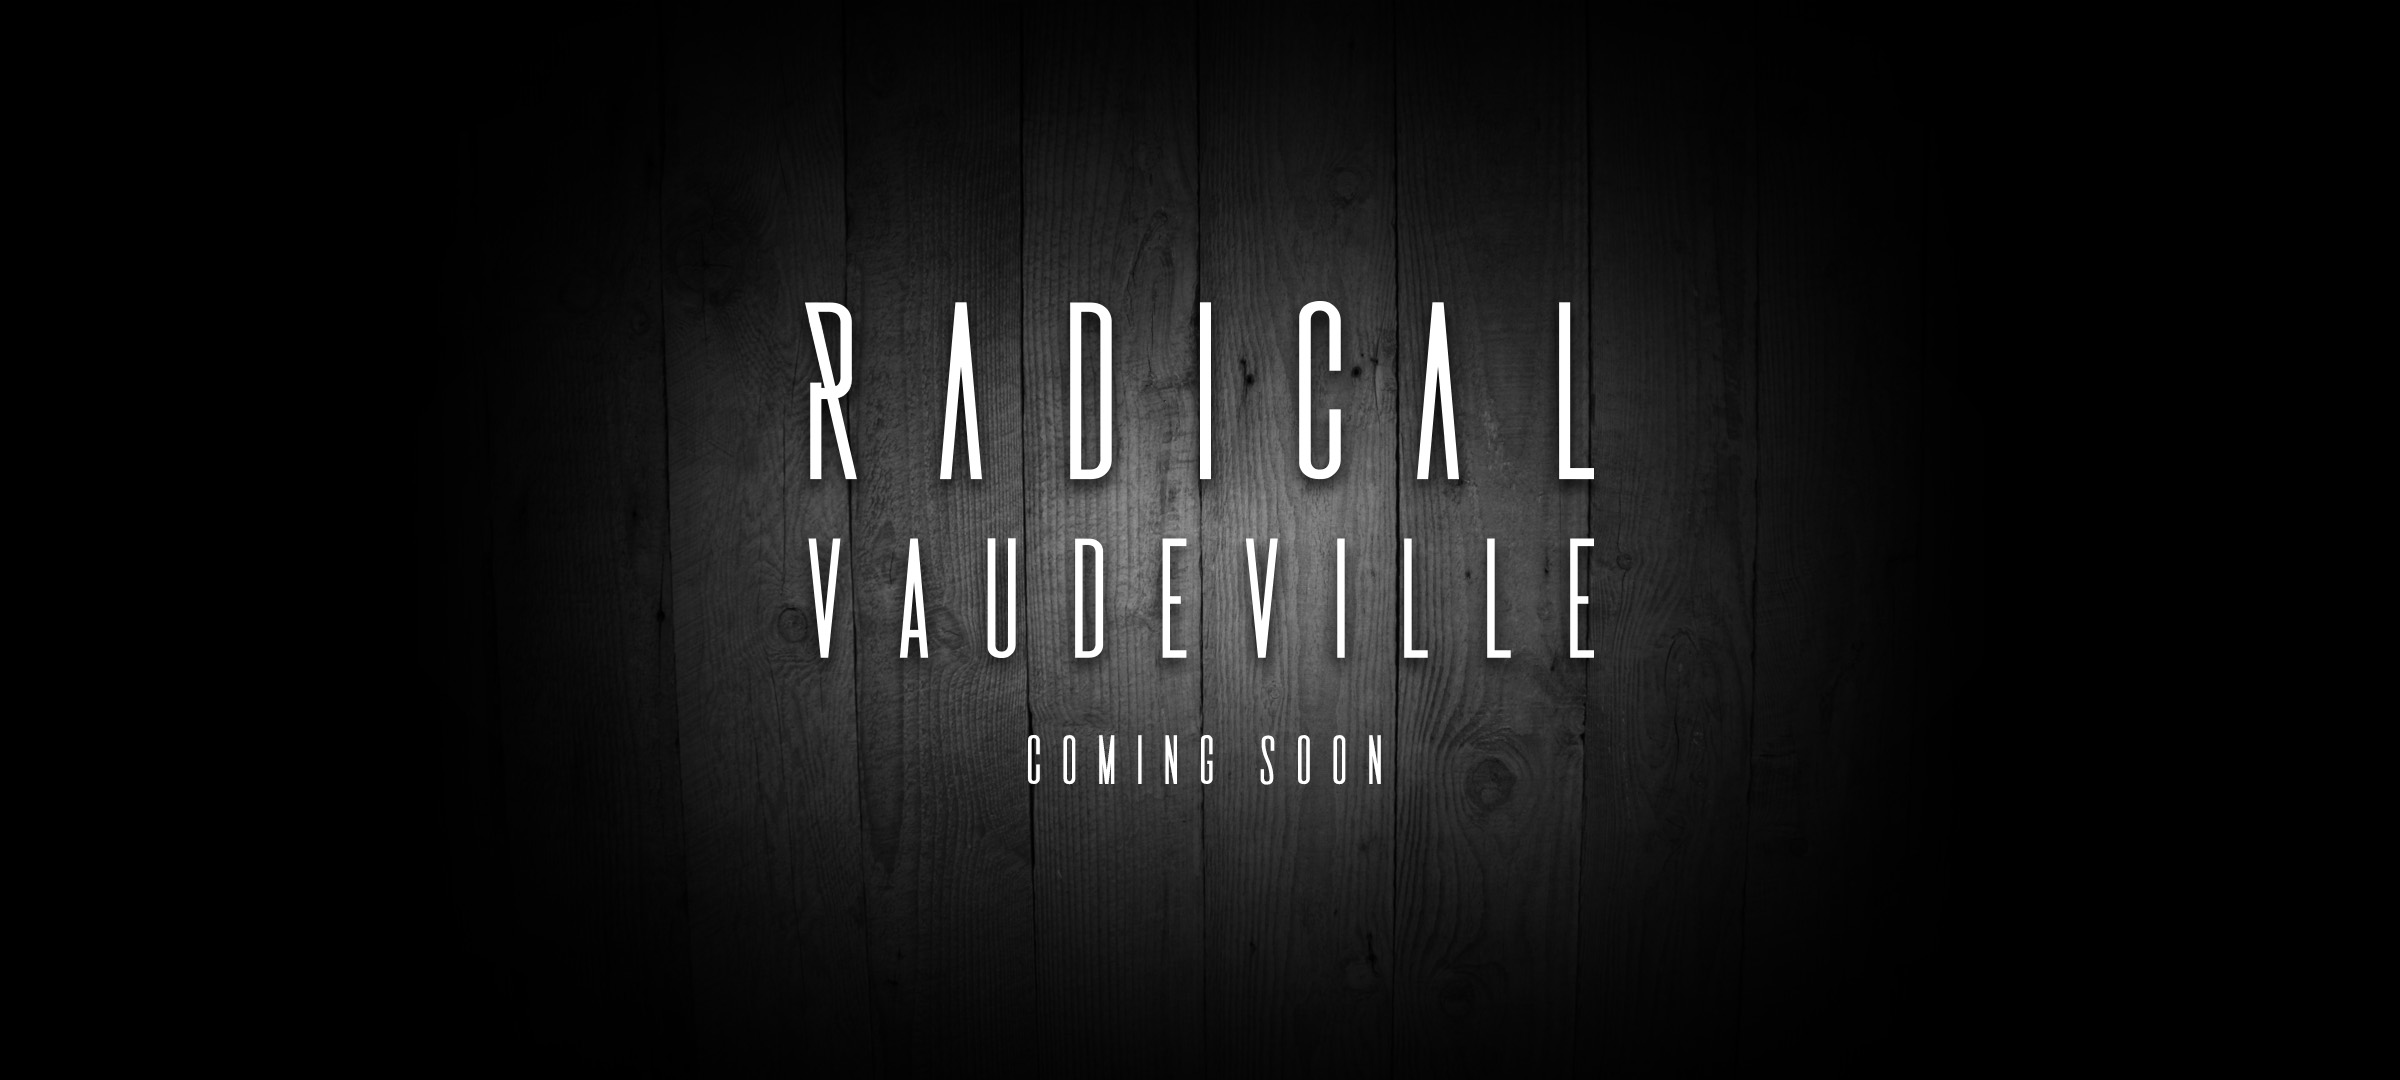 Radical Vaudeville Coming Soon